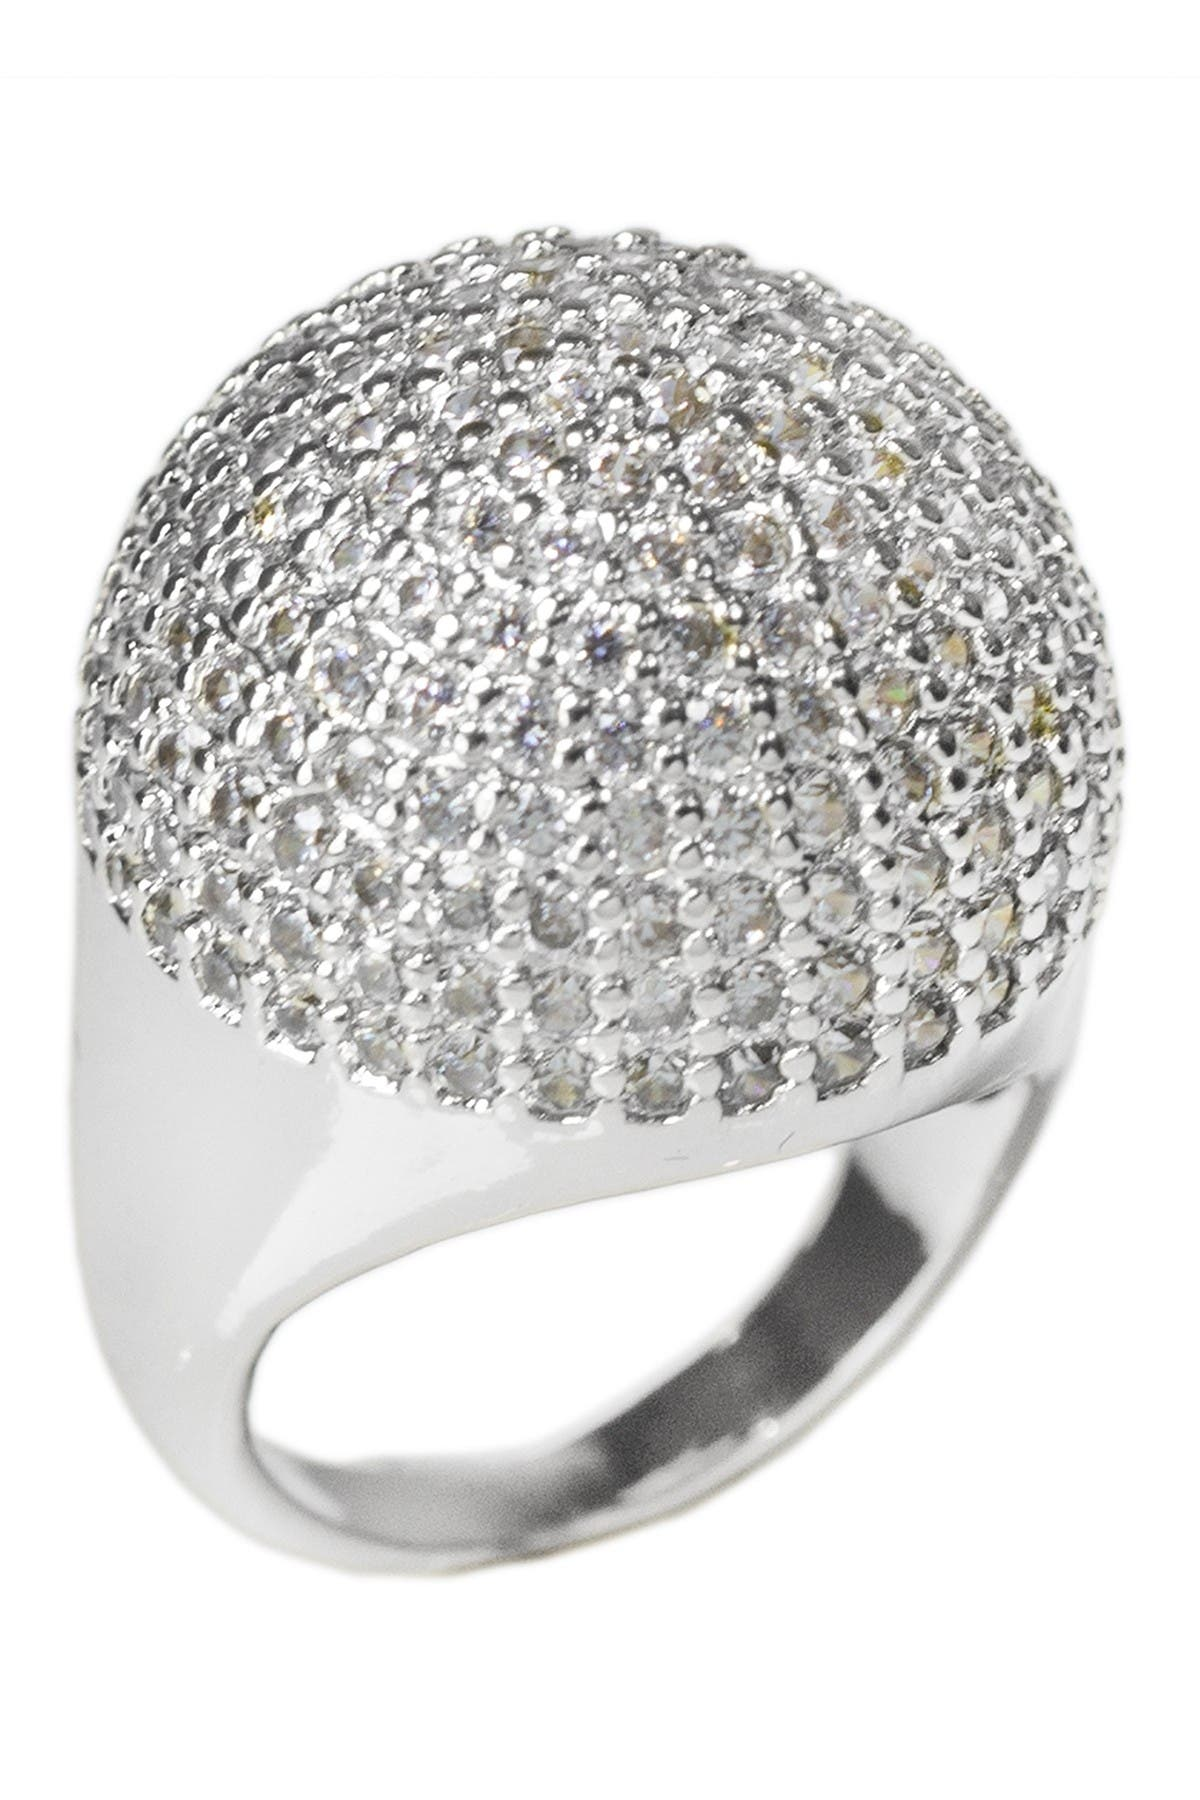 Image of CZ By Kenneth Jay Lane Rhodium Plated Pave CZ Dome Ring